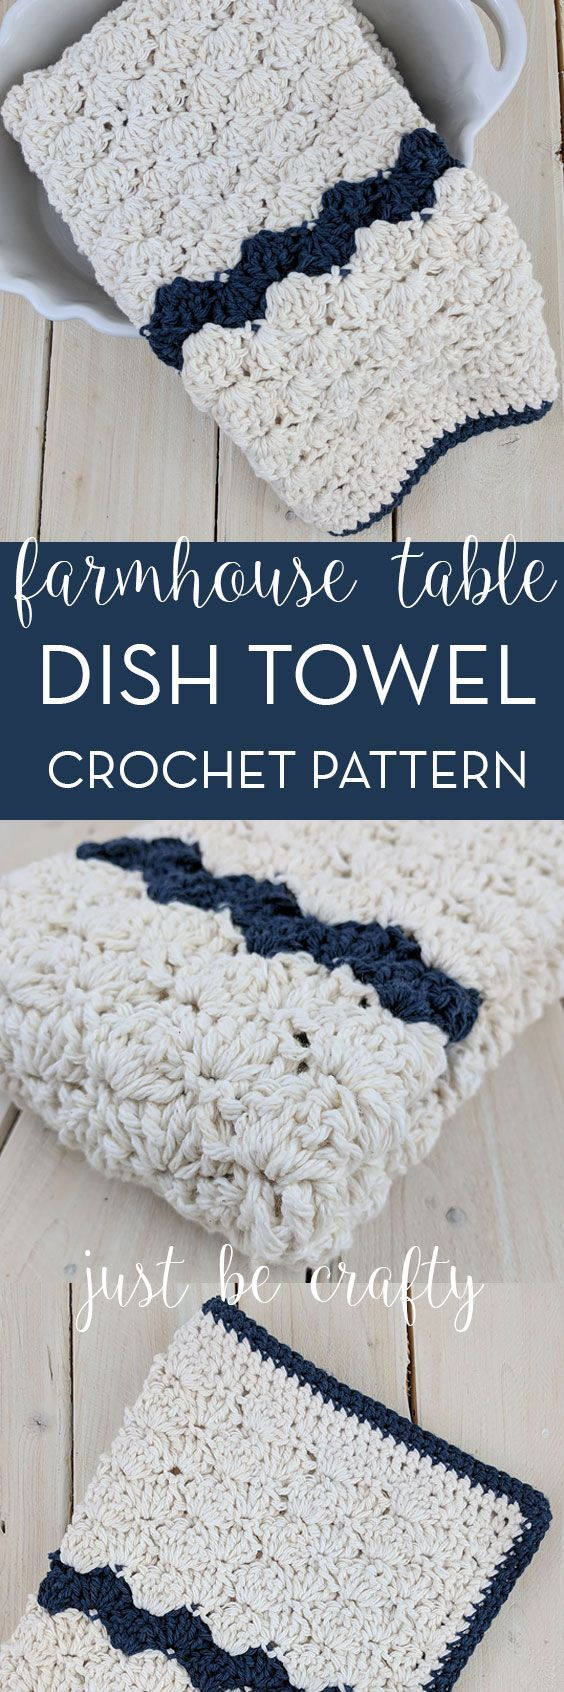 Crochet Farmhouse Table Dish Towel Pattern | Free pattern, Crafty ...